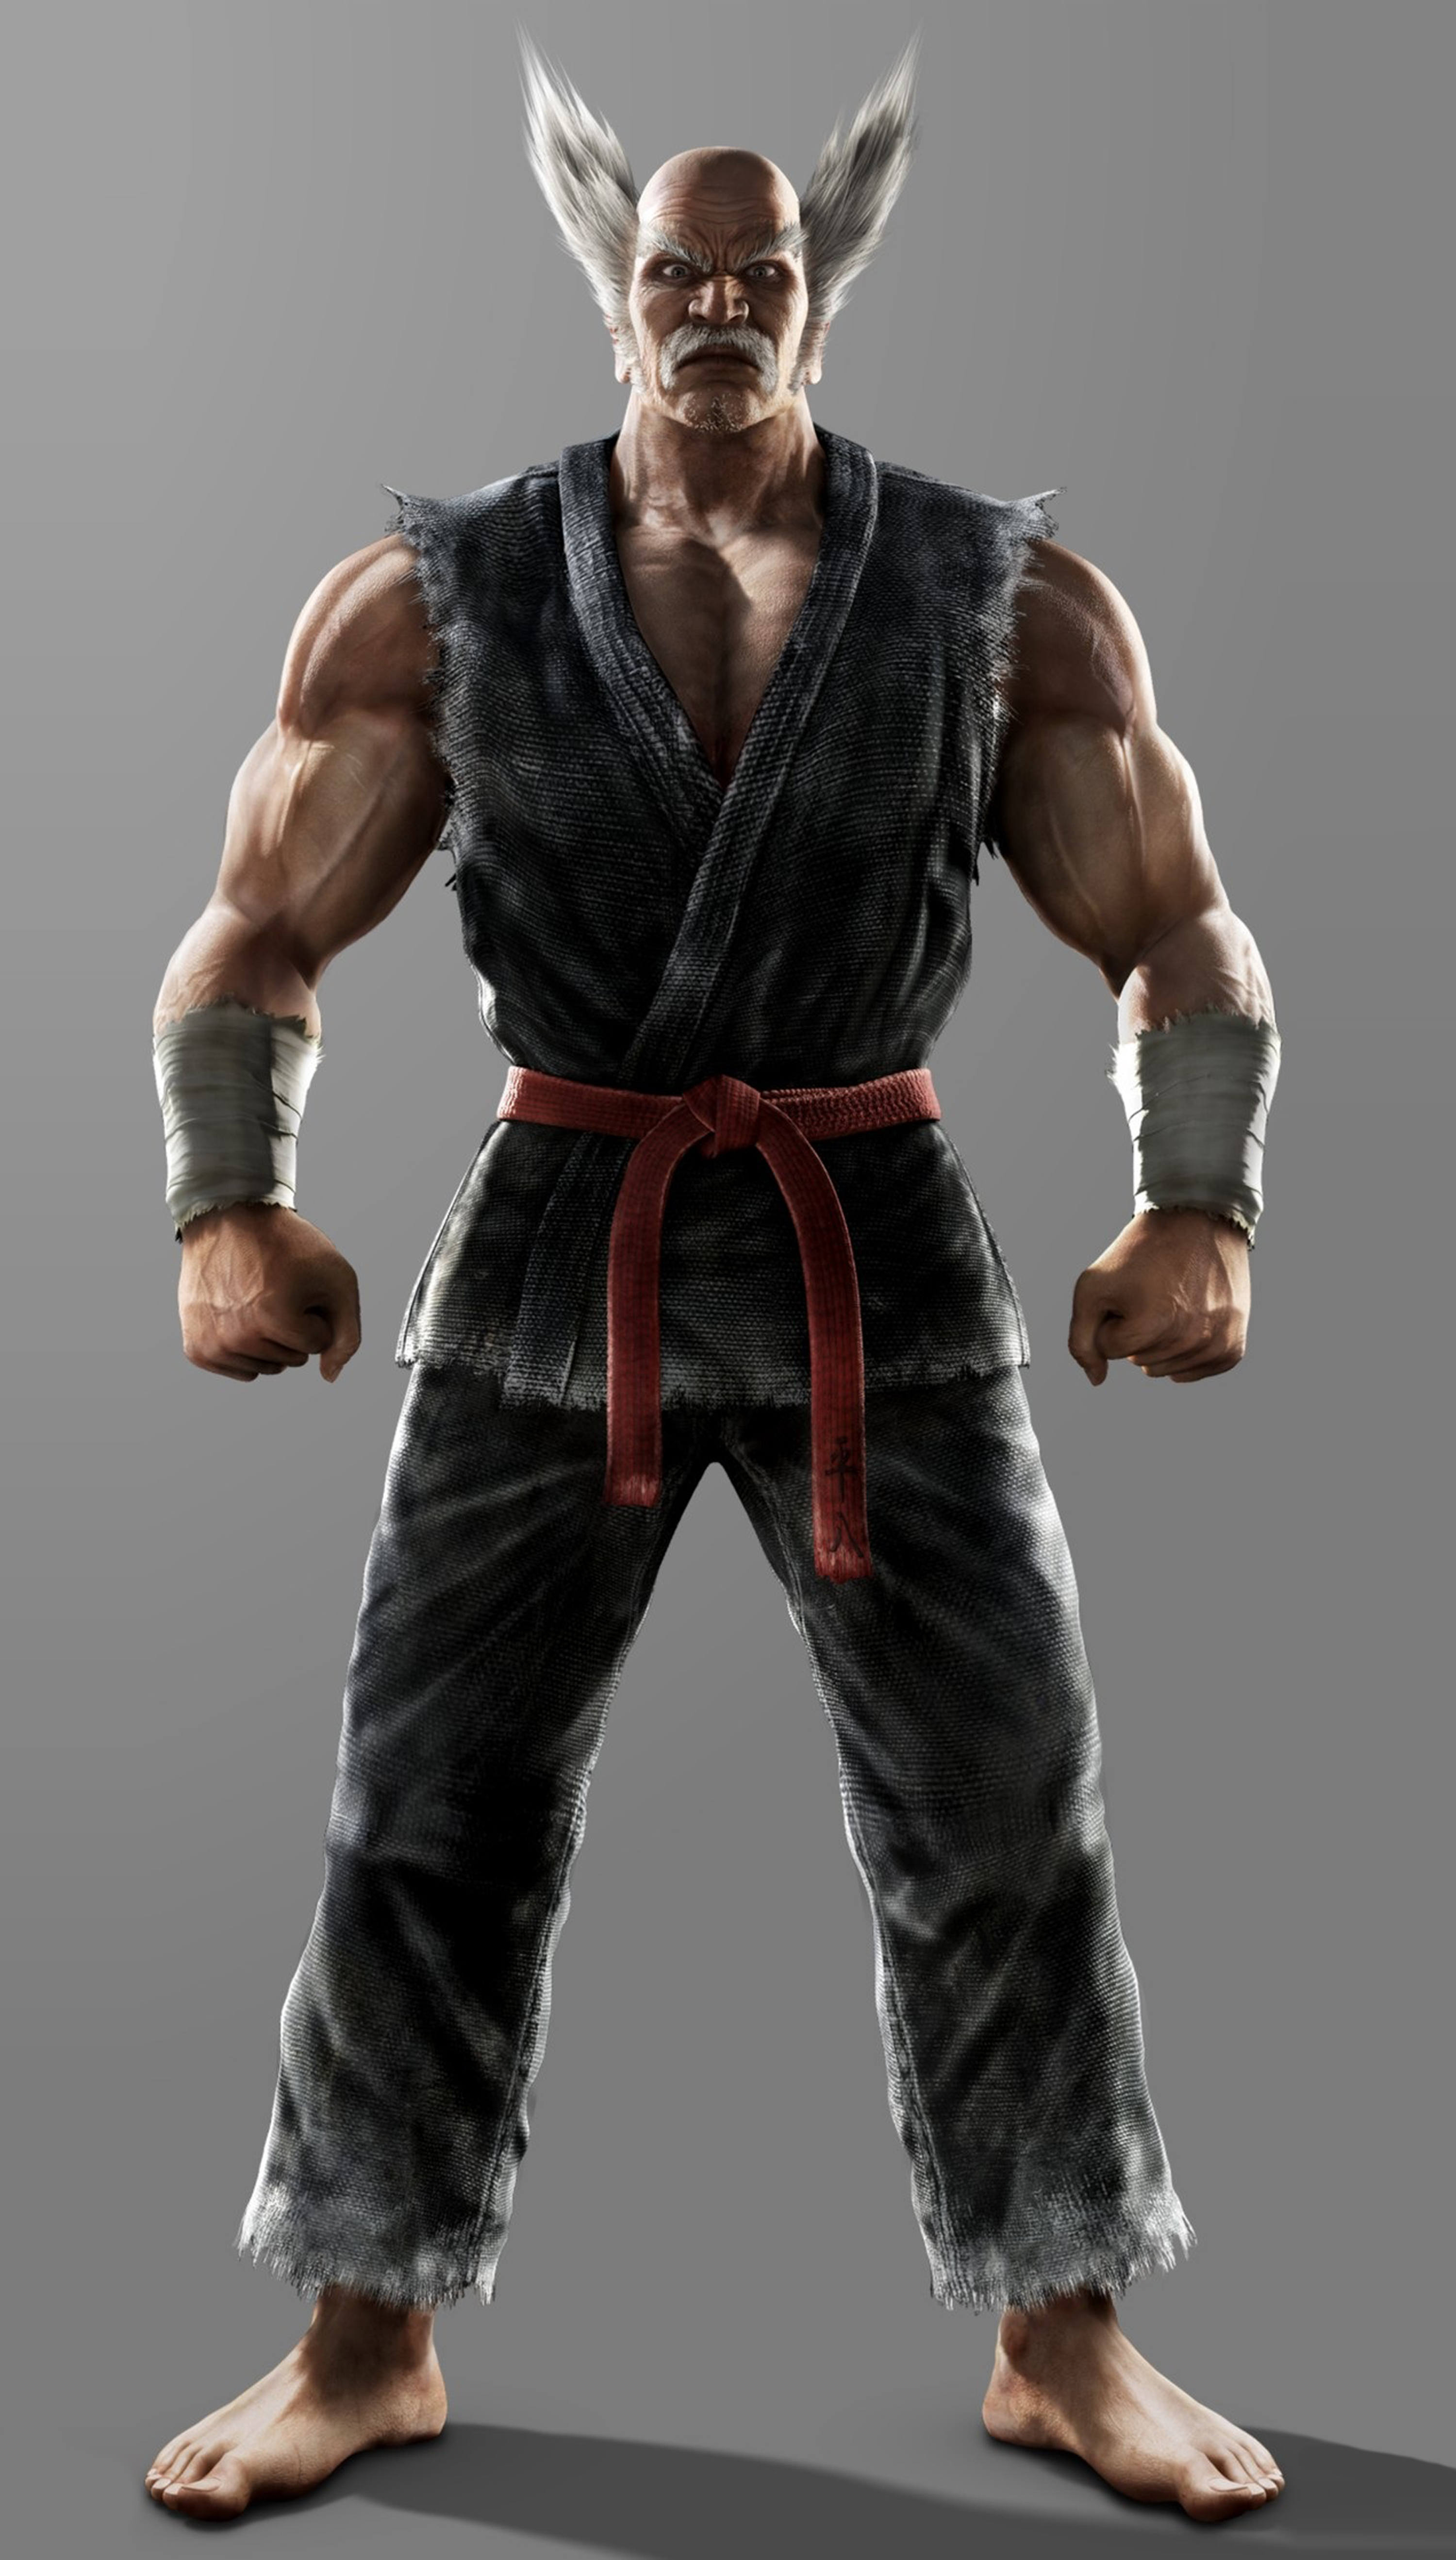 heihachi mishima tekken art gallery page 2 the fighters generation